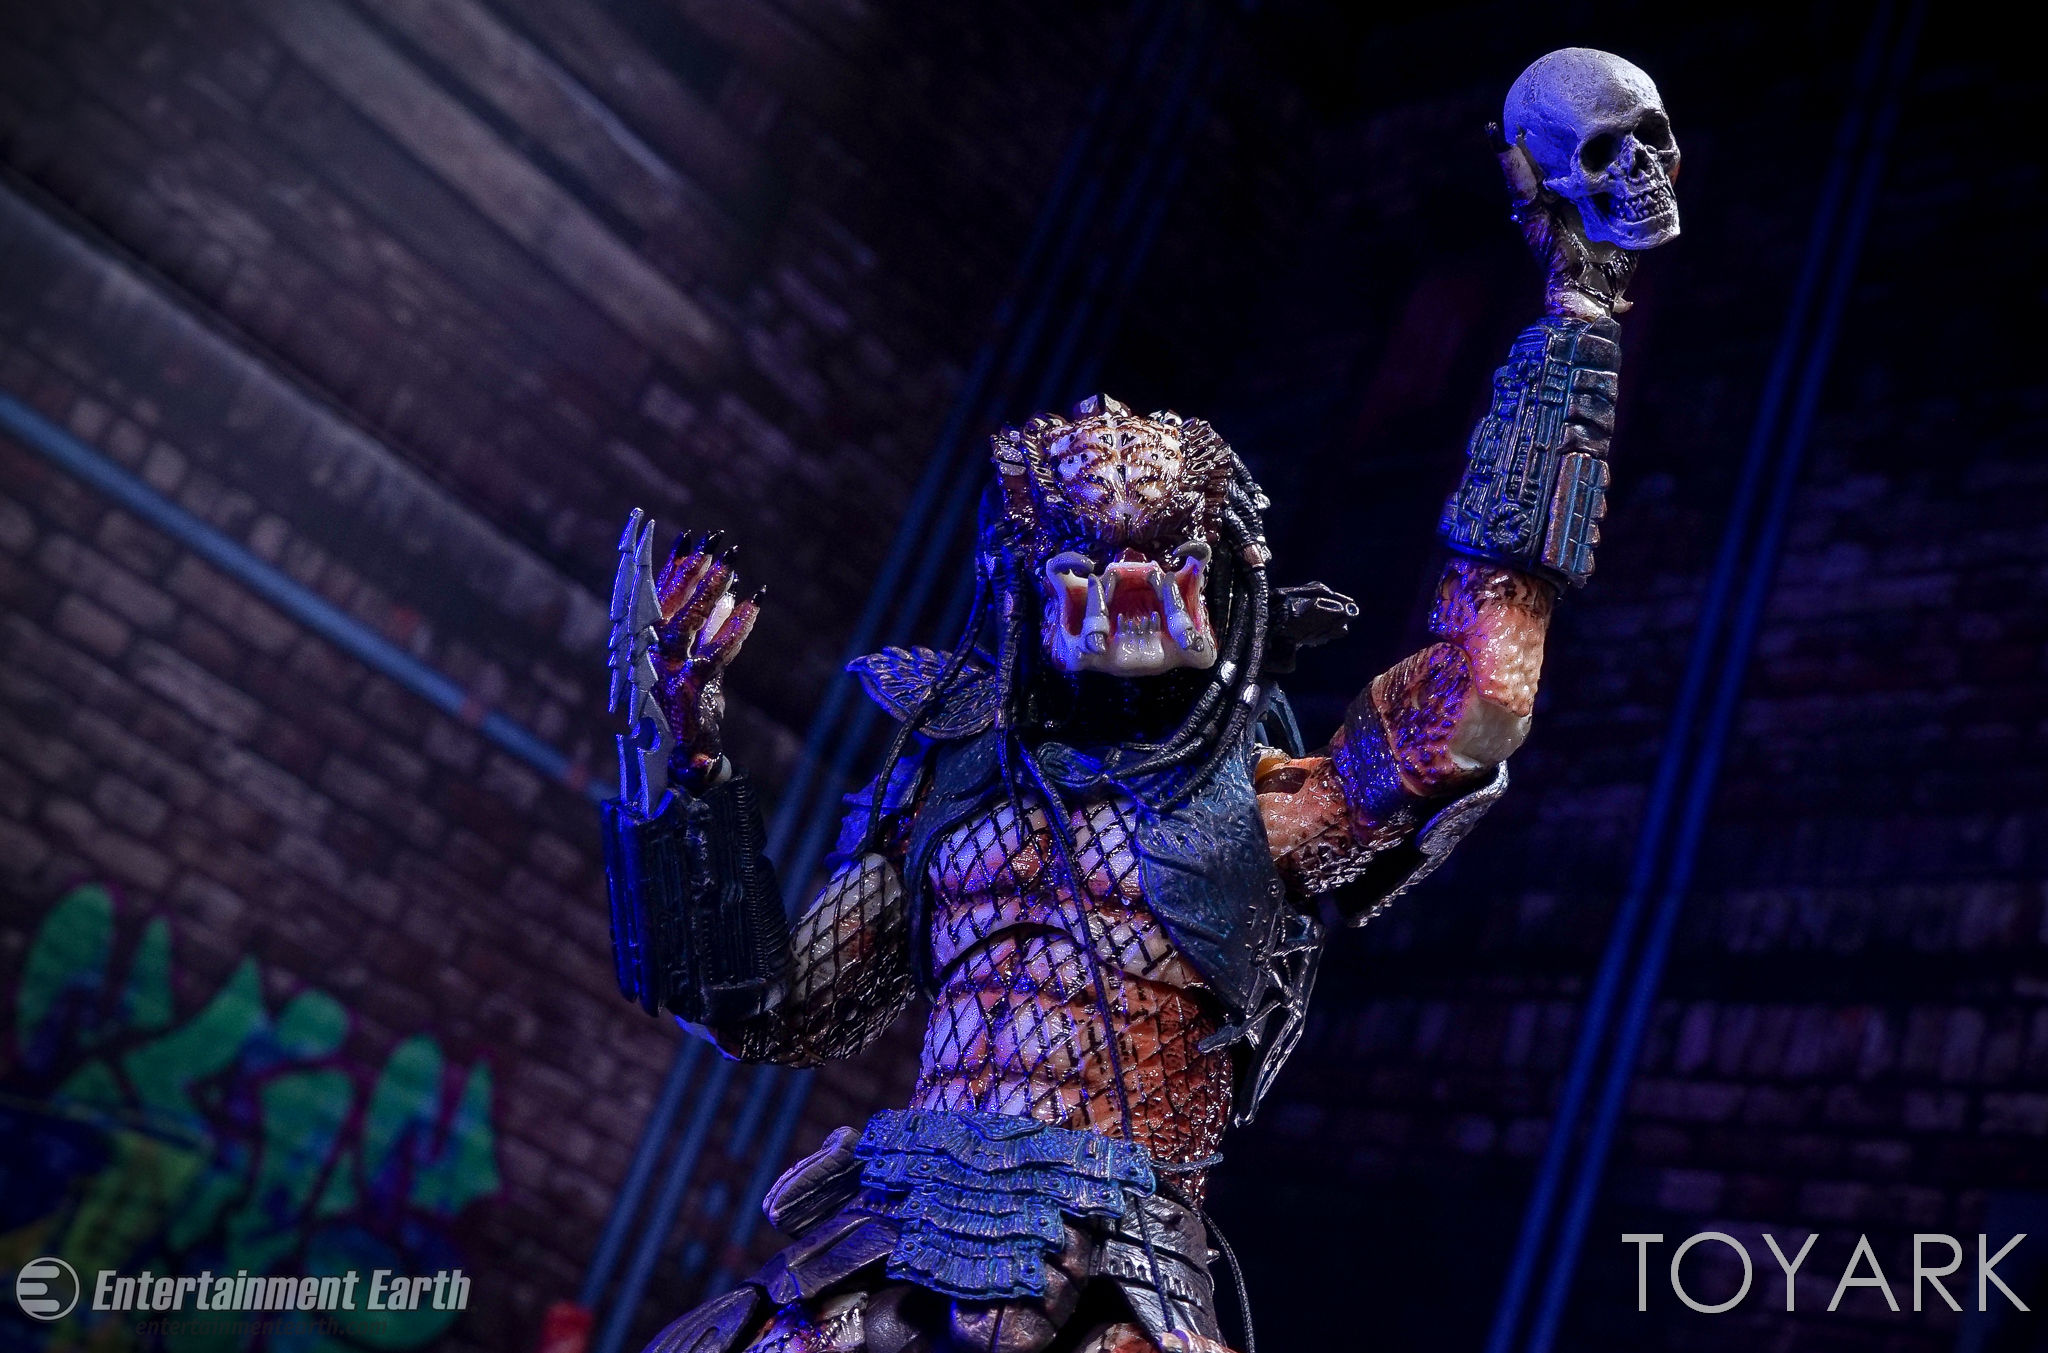 http://news.toyark.com/wp-content/uploads/sites/4/2017/03/NECA-Ultimate-City-Hunter-Predator-053.jpg